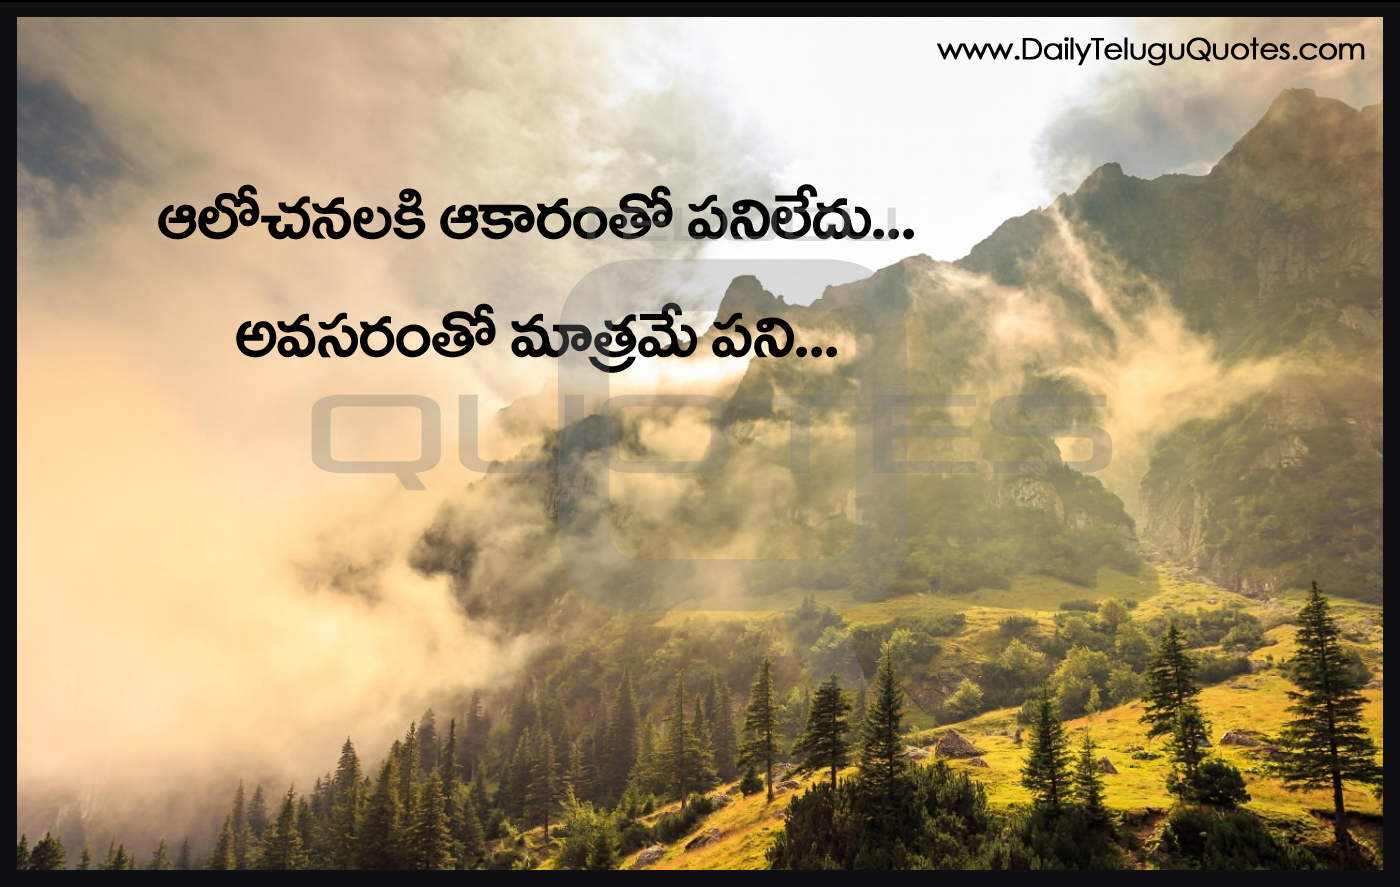 Best Inspirational Quotes About Life Best Inspiration Quotes On Life Success Hd Wallppaers Telugu